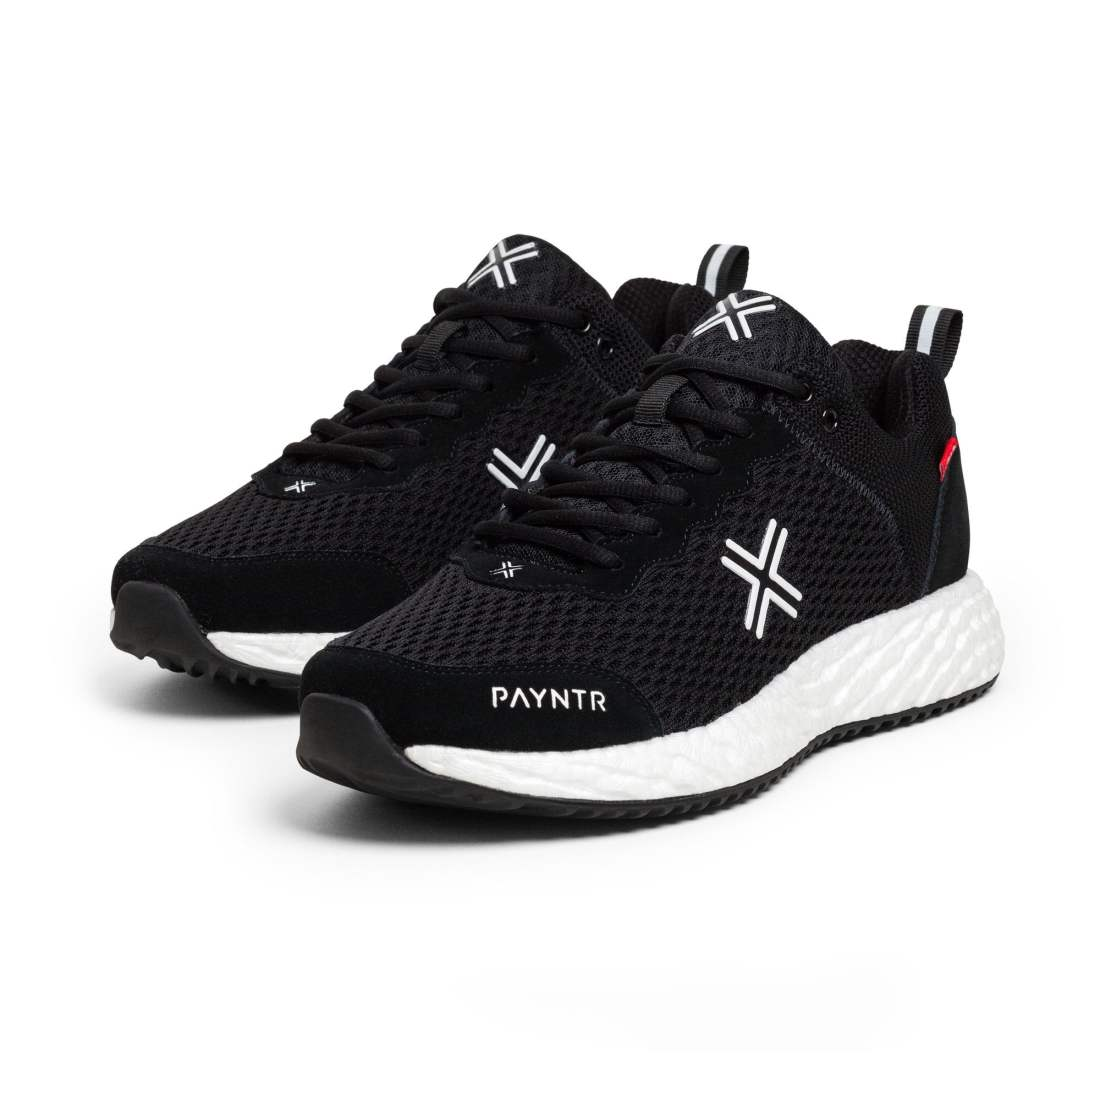 PAYNTR Bodyline 412 Black Trainers